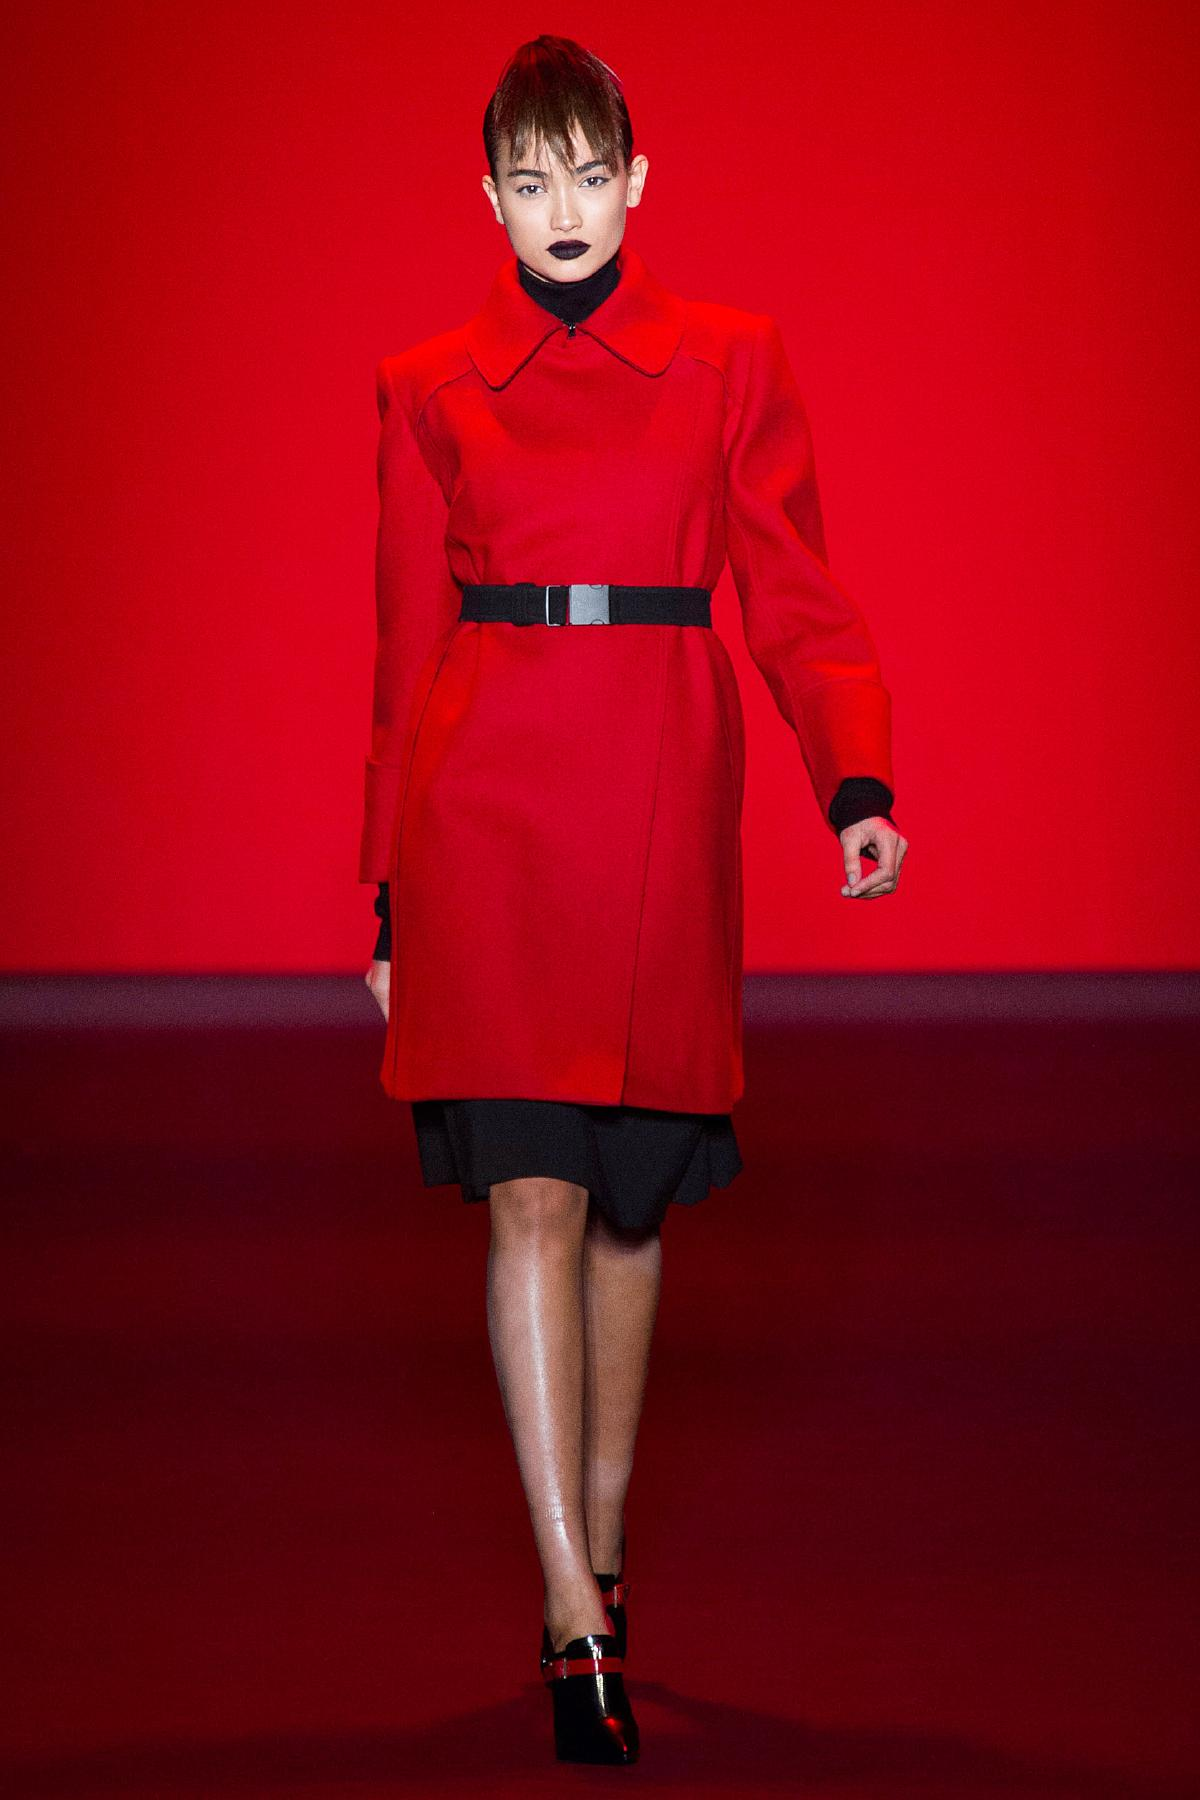 Vivienne Tam: Two Words…RED HOT!